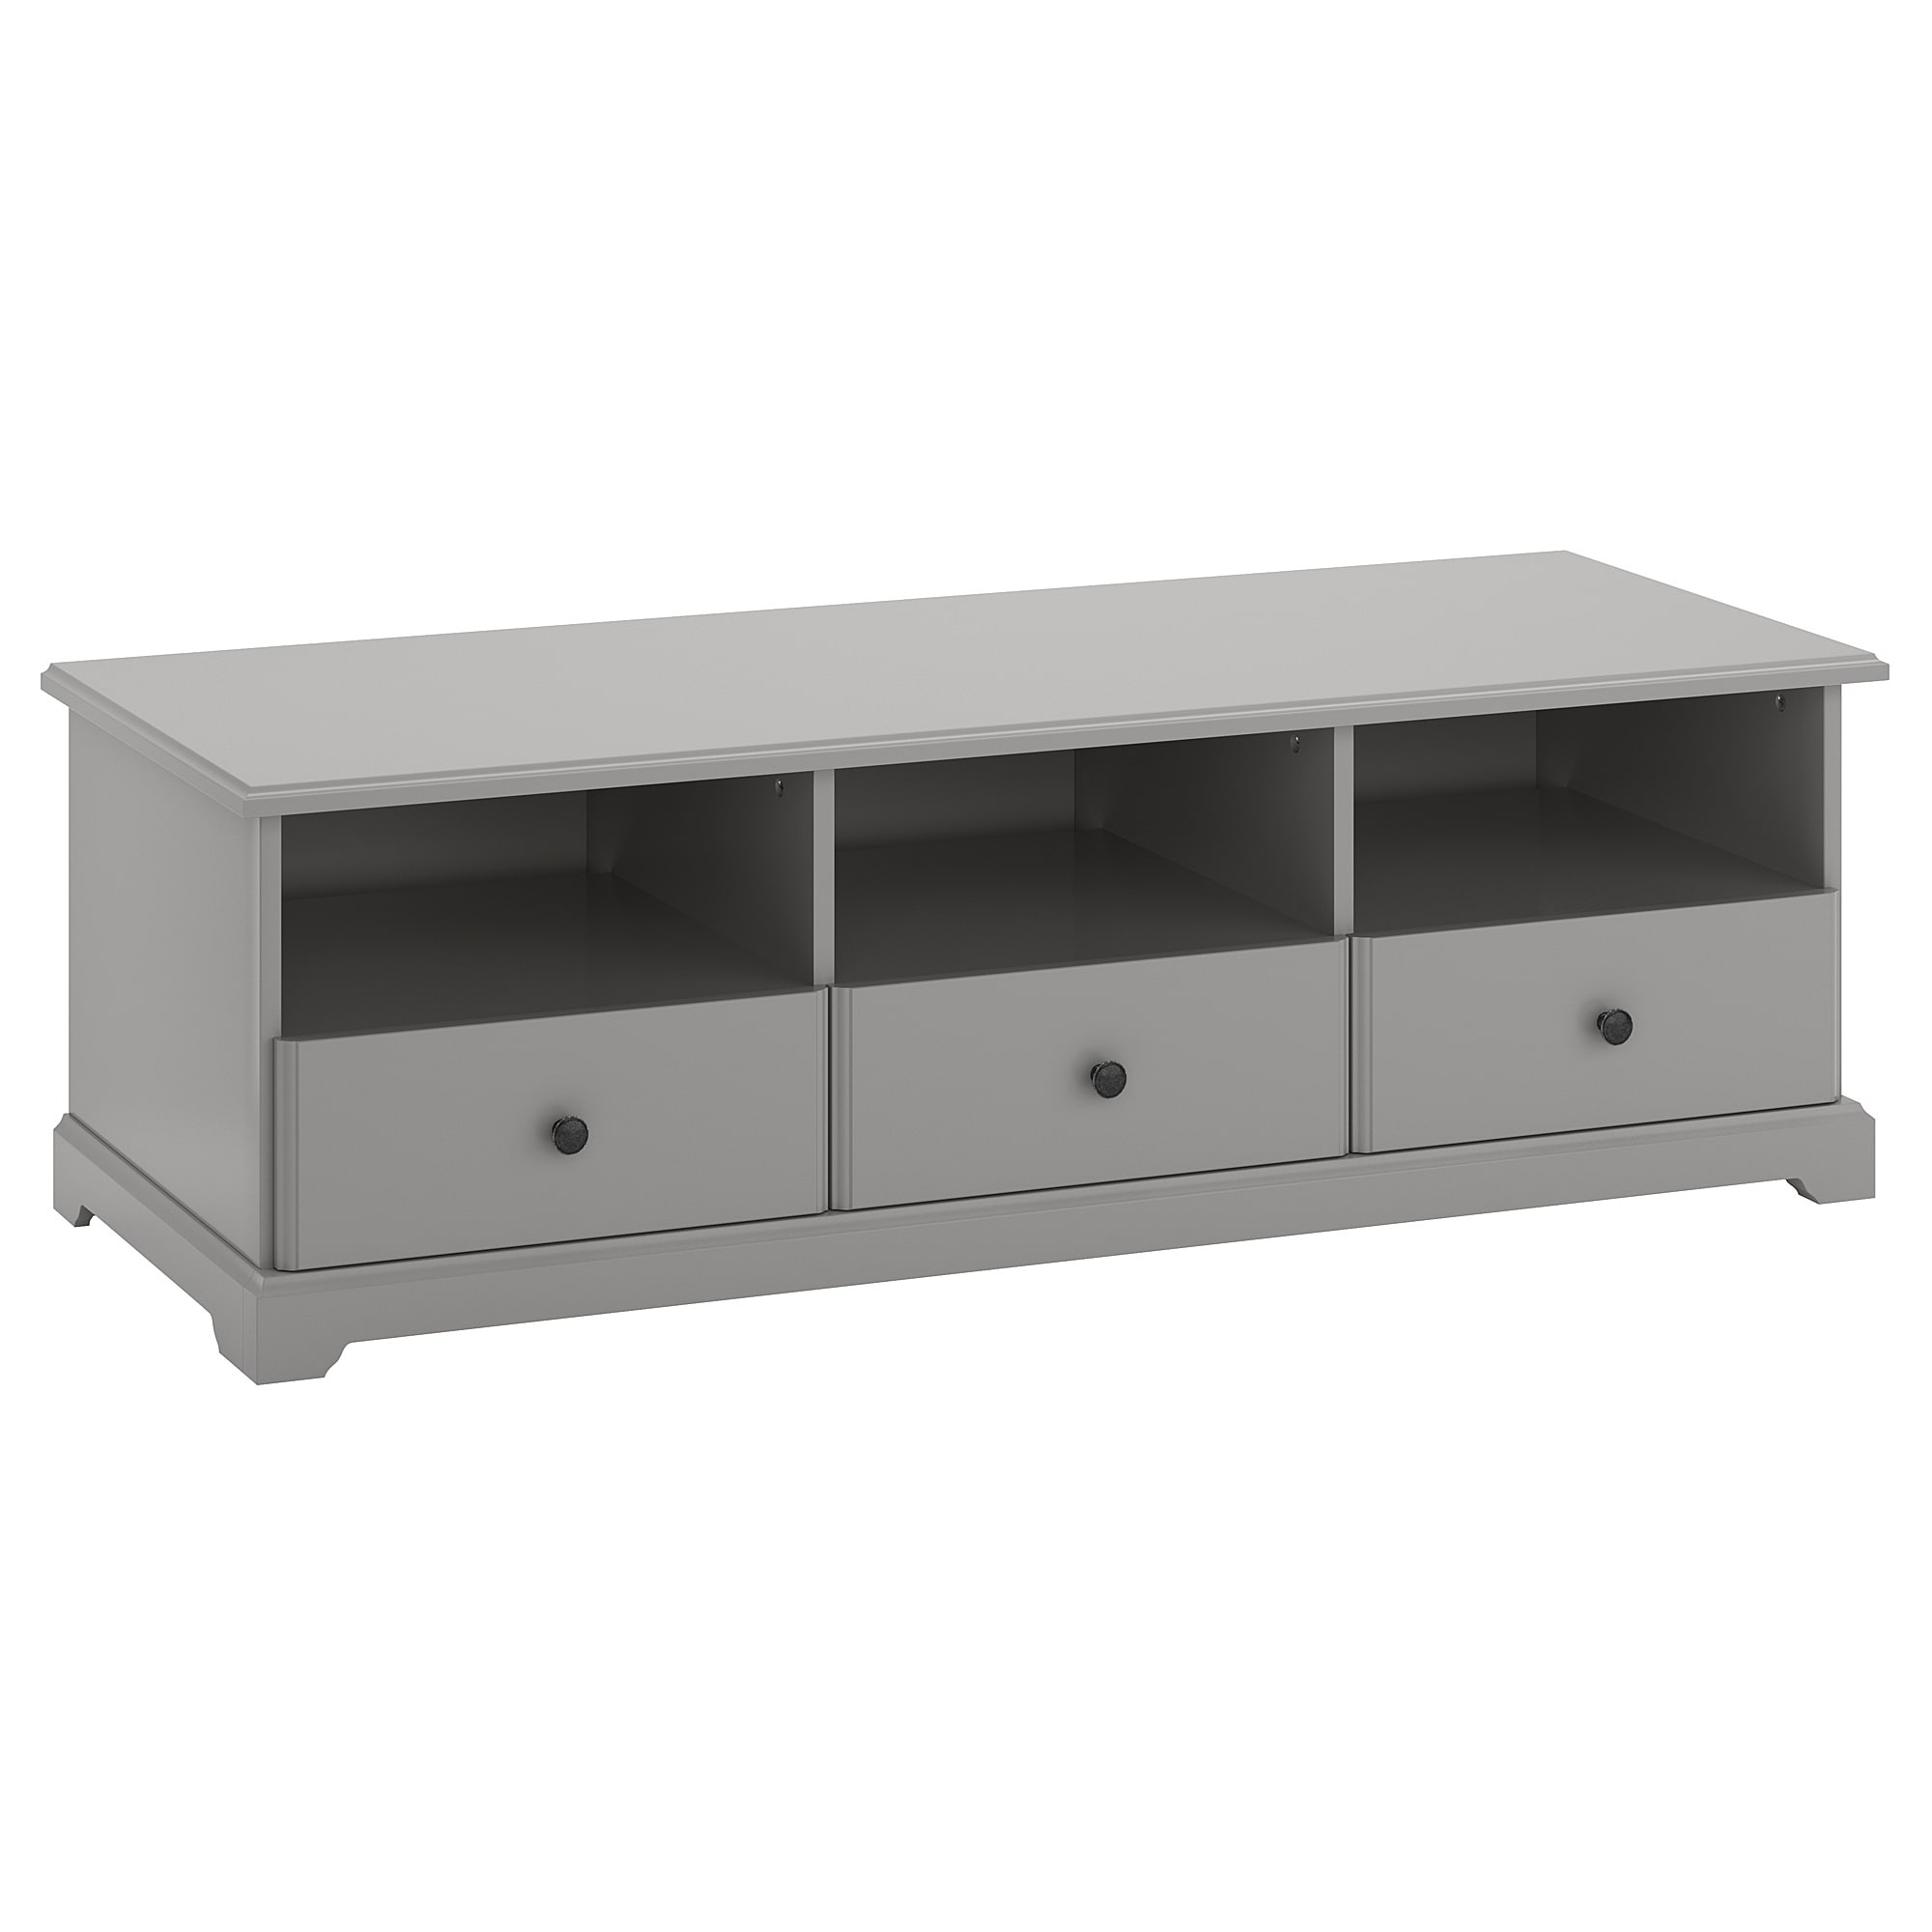 Black Tv Cabinets With Drawers For Widely Used Liatorp Tv Bench Grey 145 X 49 X 45 Cm – Ikea (View 17 of 20)